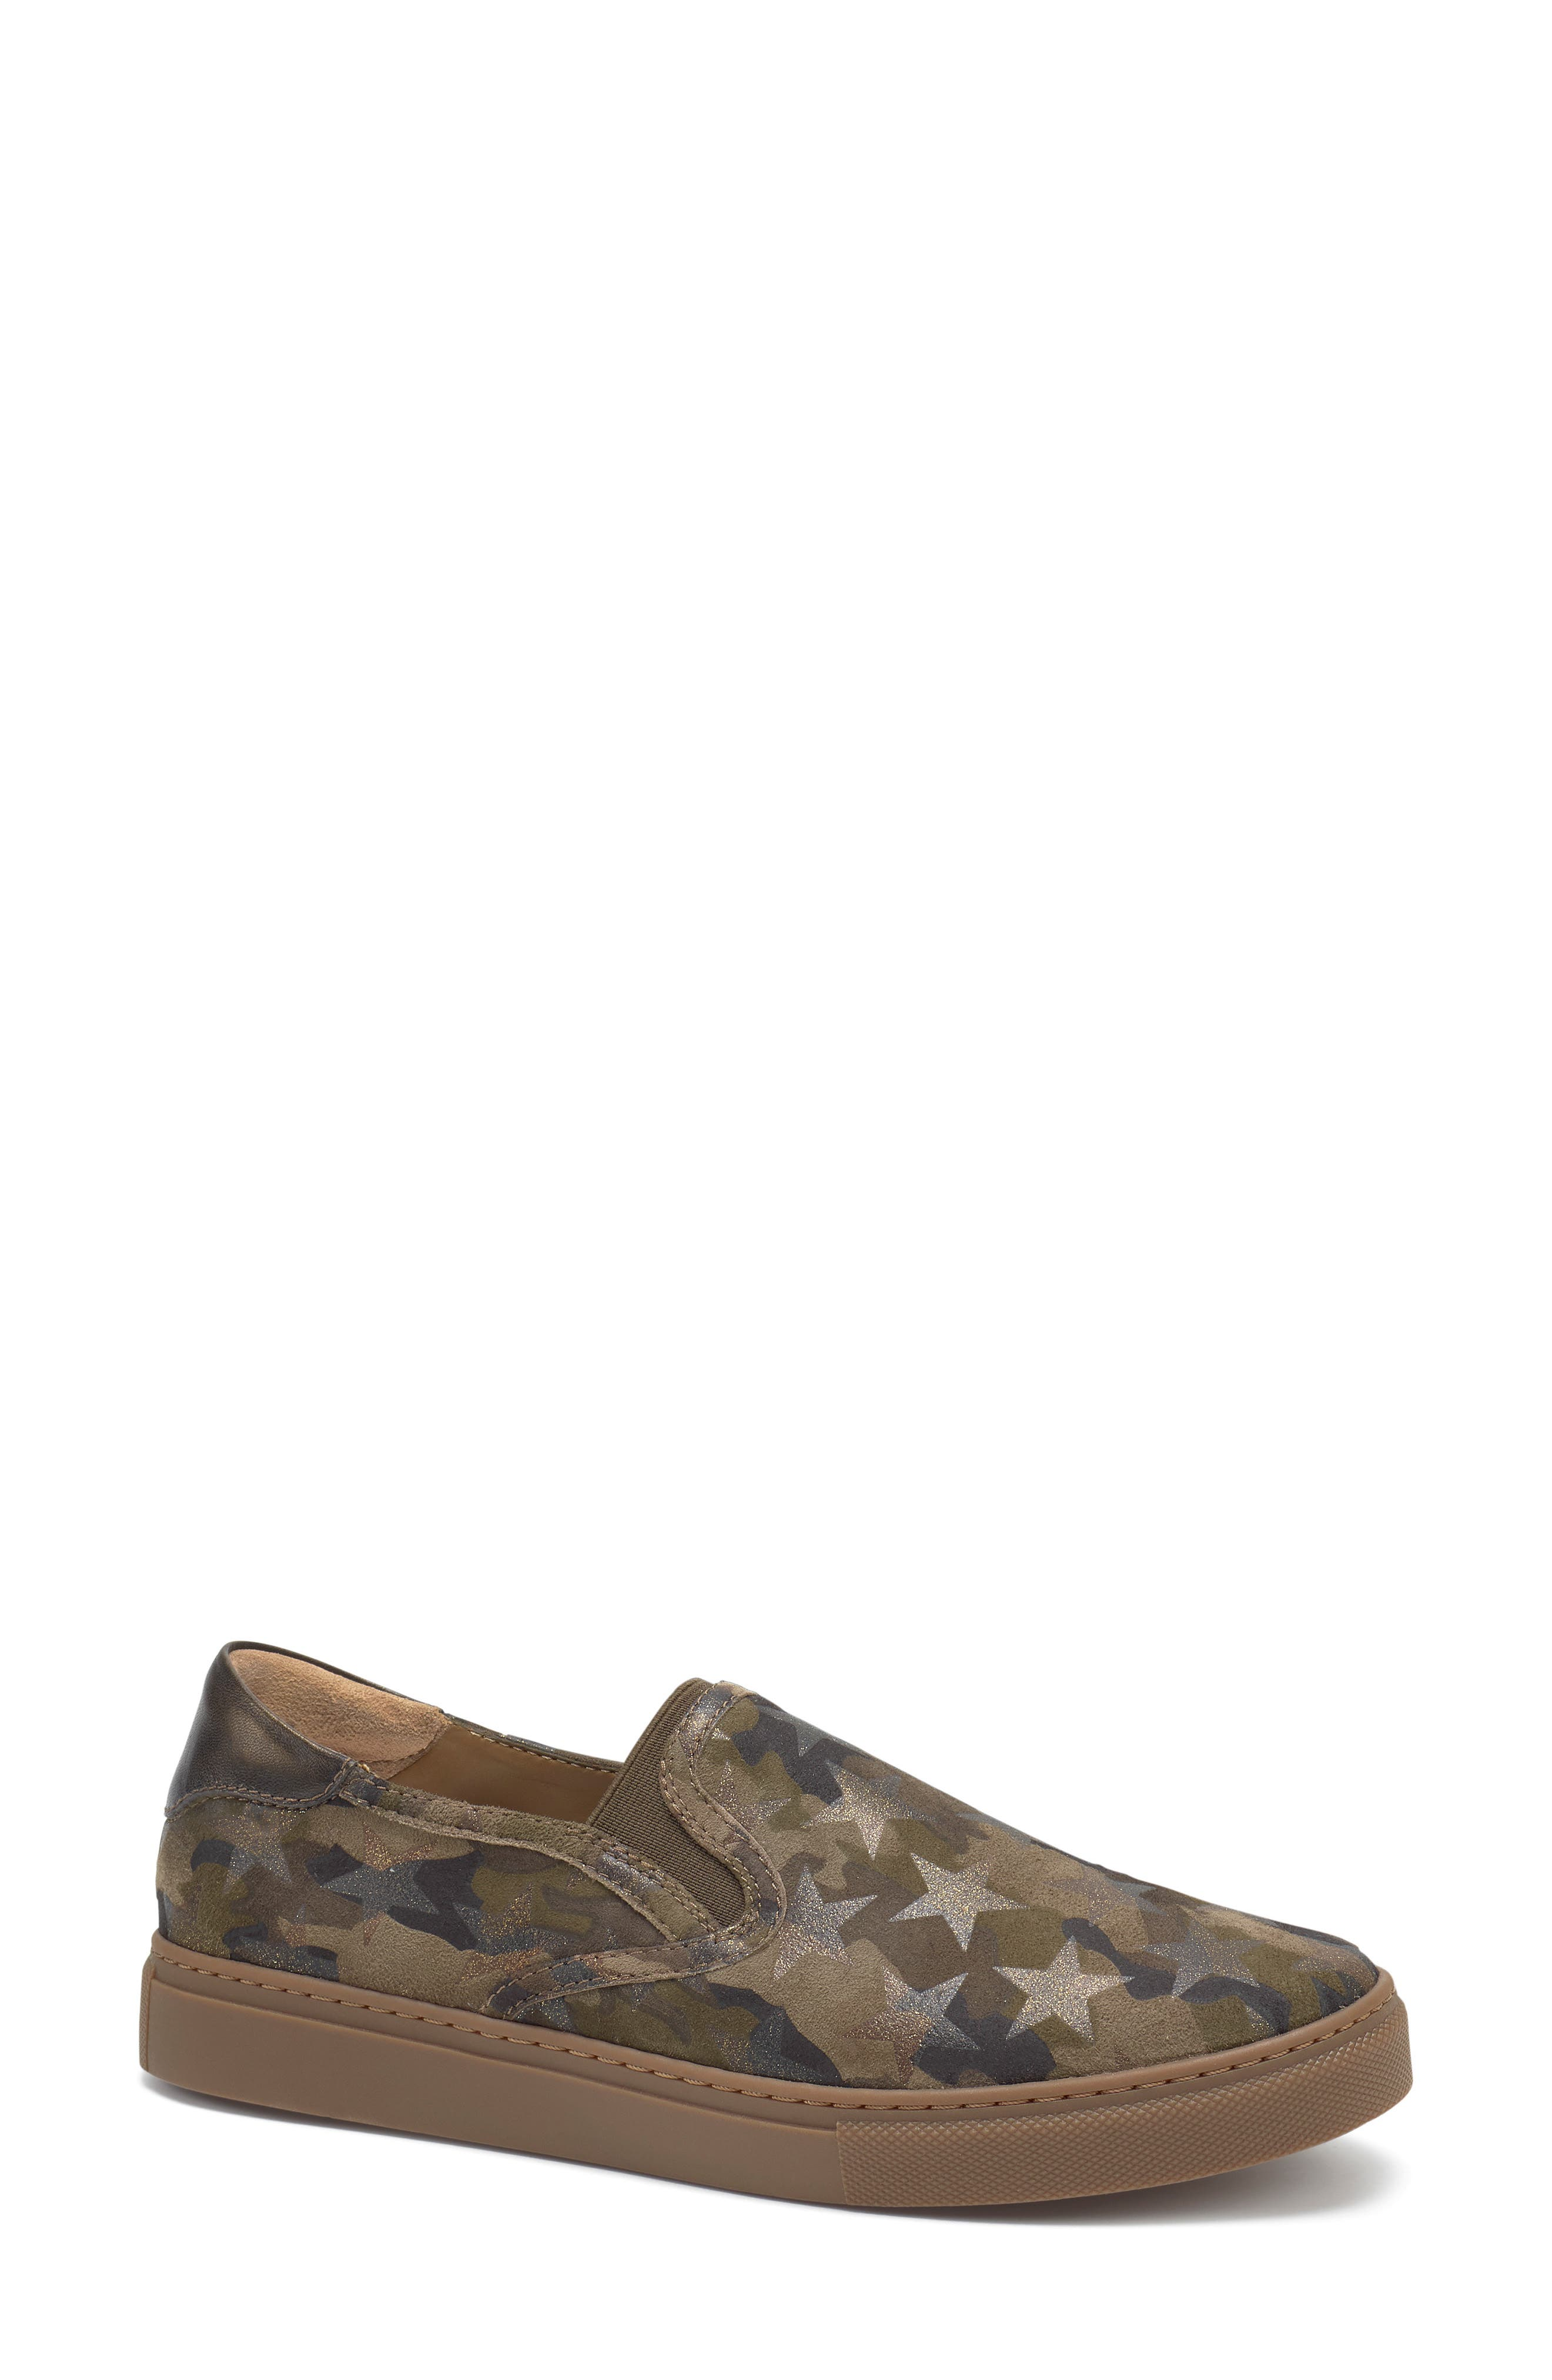 Lillian Water Resistant Slip-On Sneaker,                         Main,                         color, OLIVE STAR PRINT SUEDE